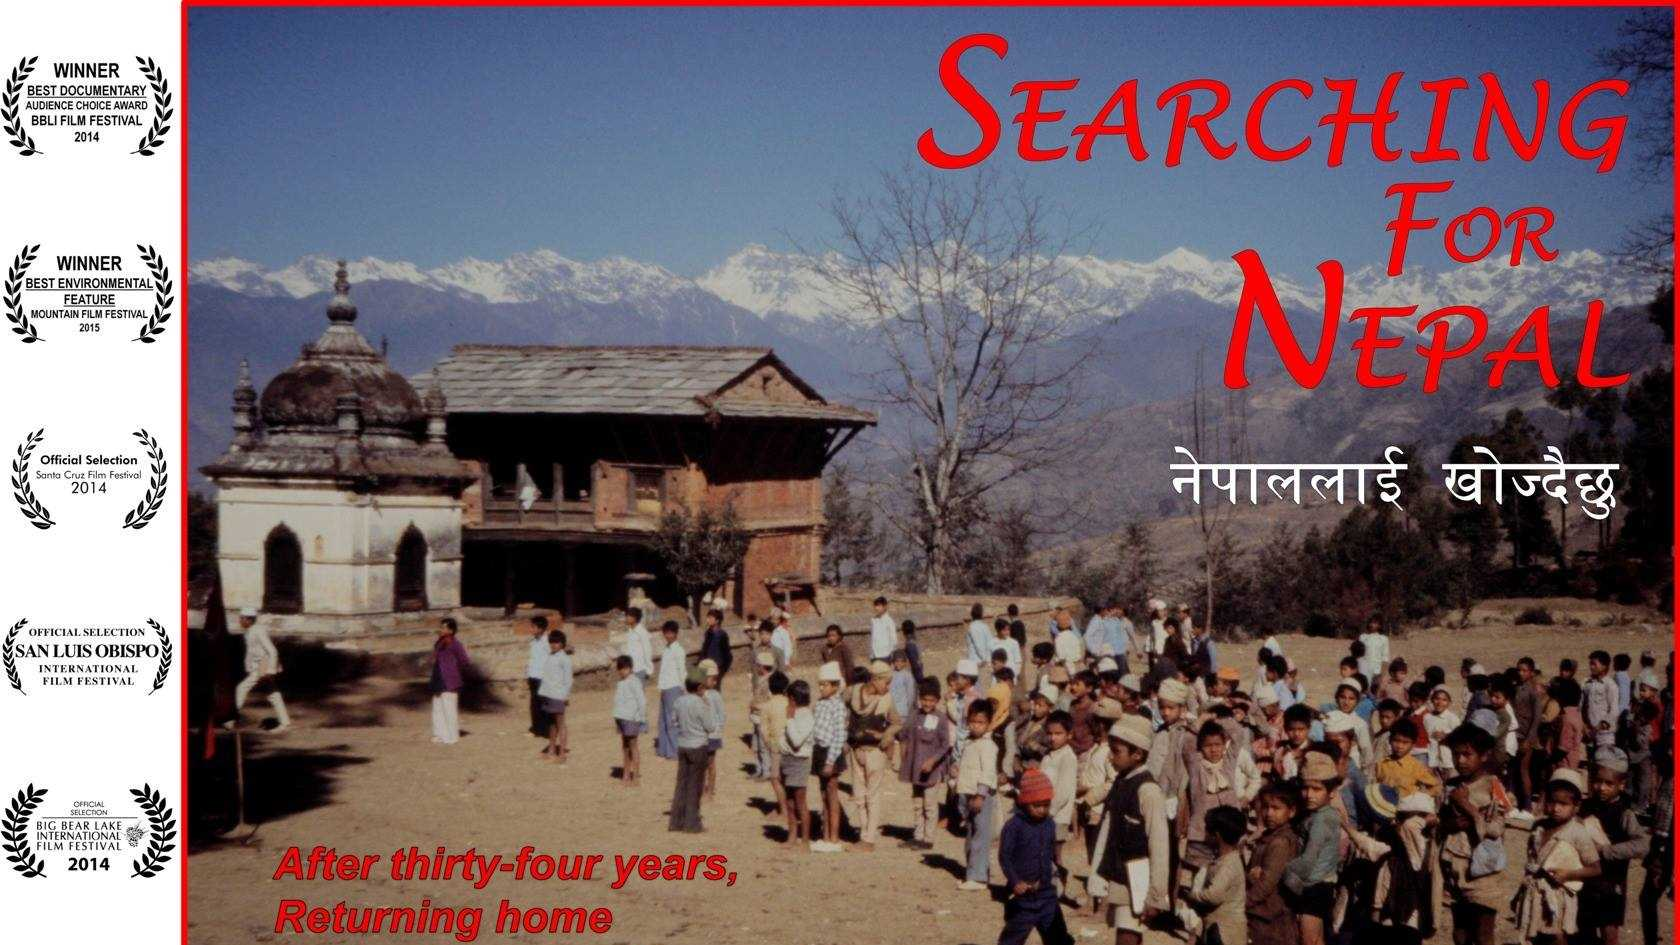 Doors opened Sunday afternoon to a crowd of 100 people waiting to view the critically-acclaimed documentary about a man's journey back to Nepal after 34 years.